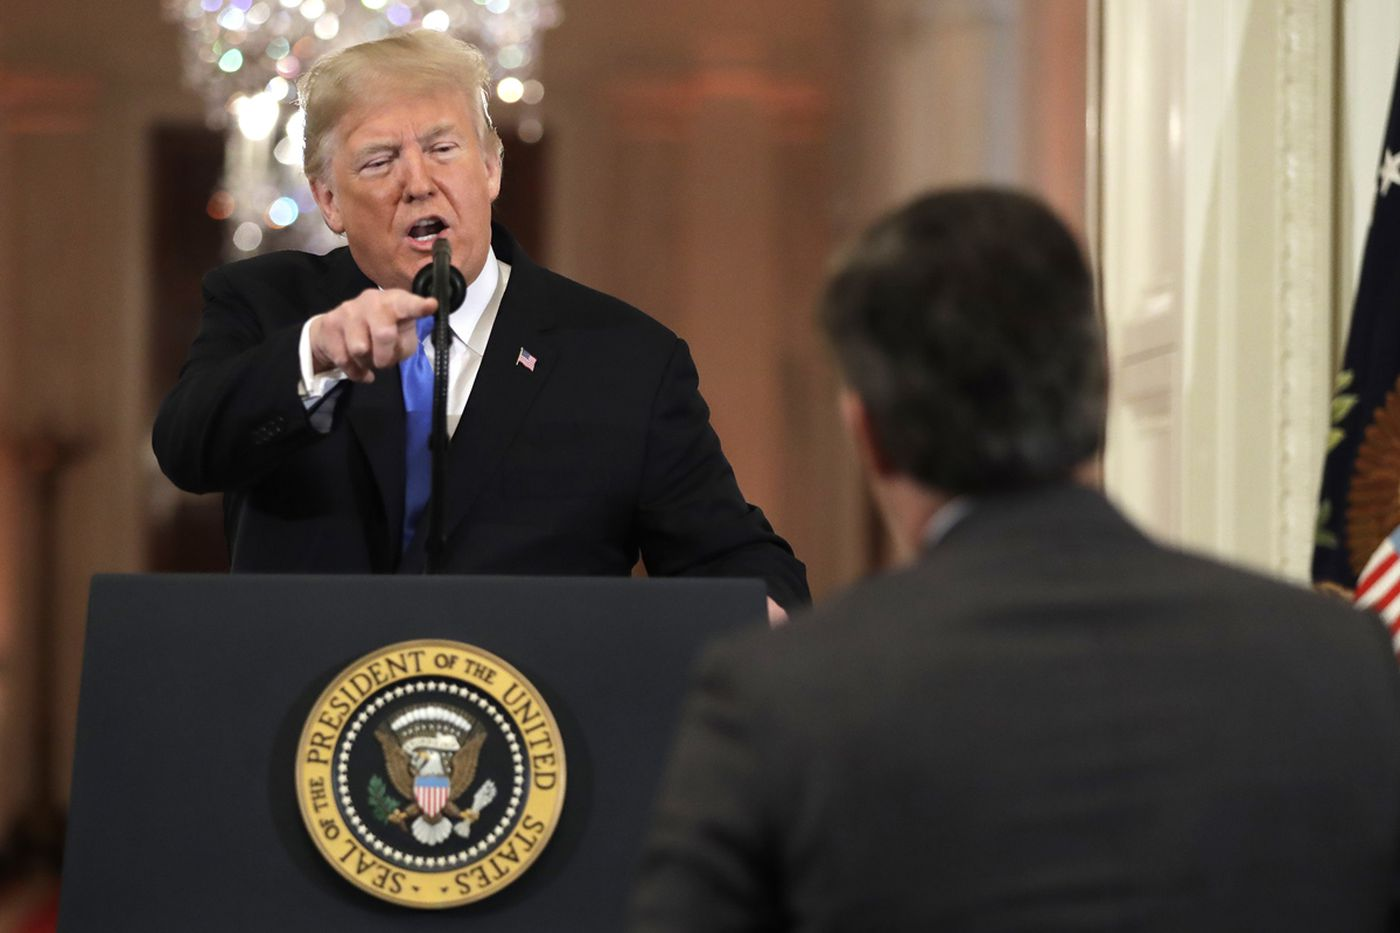 Journalism Institute Criticizes Acosta's Conduct During Presser